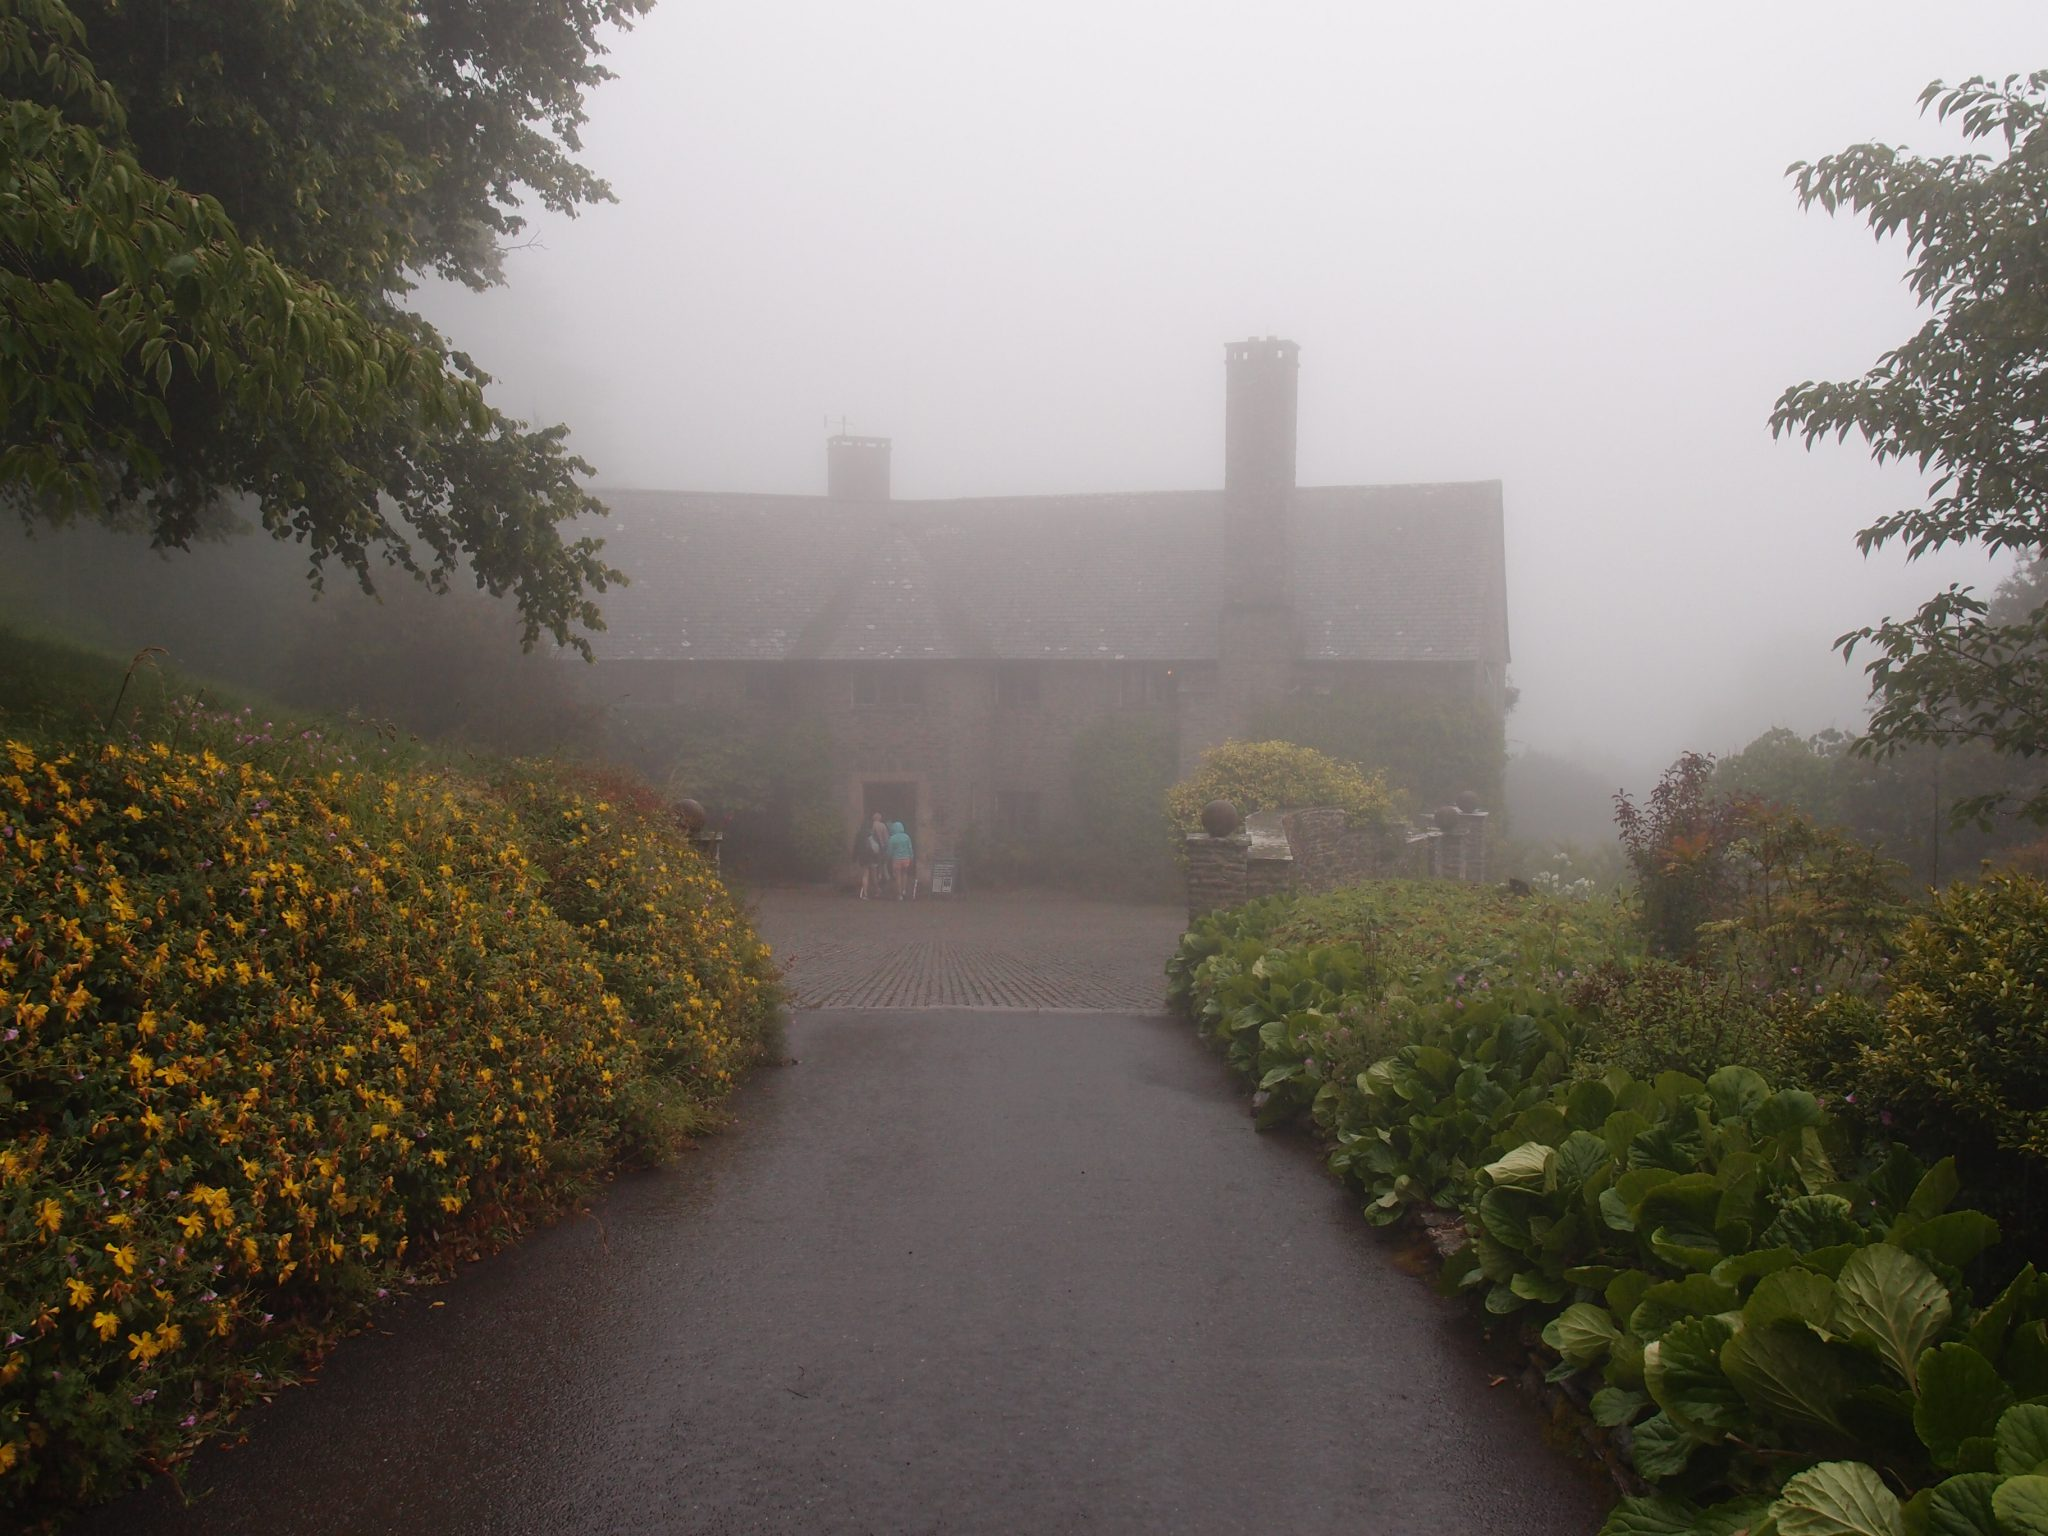 My first glimpse of the House at Coleton Fishacre.